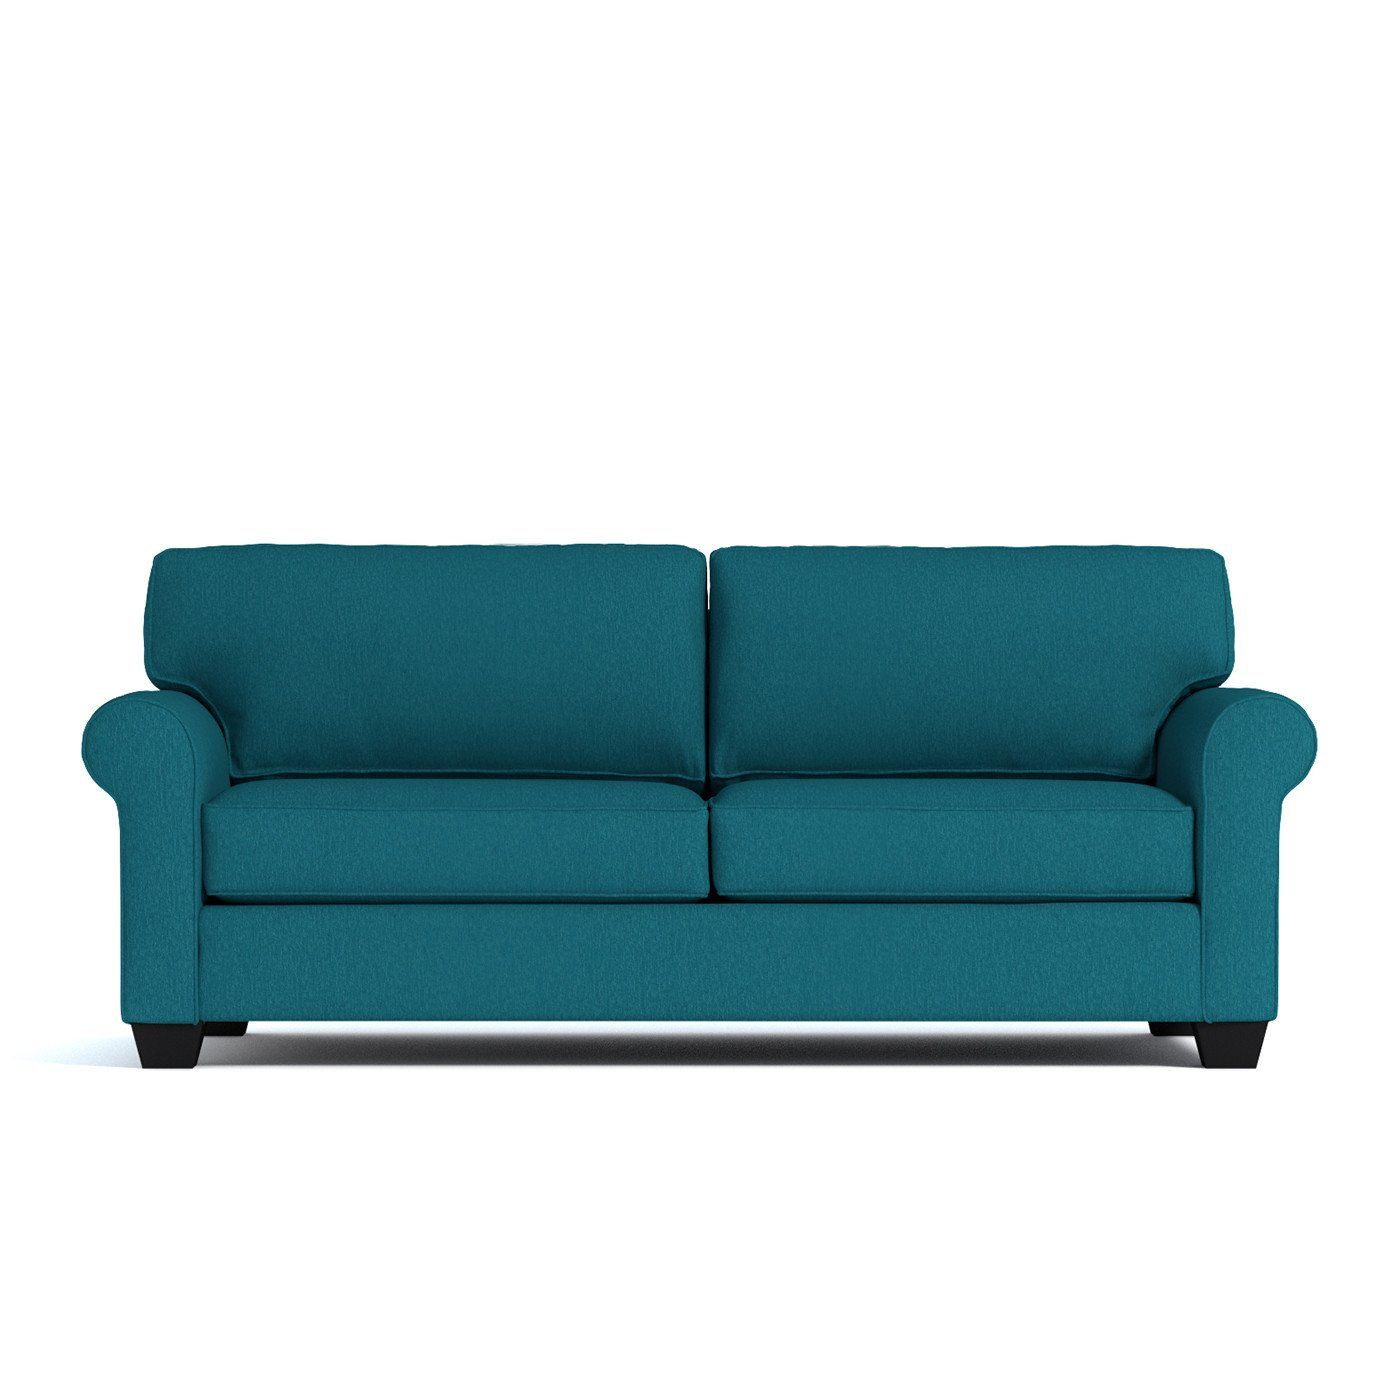 Lafayette Sofa CHOICE OF FABRICS